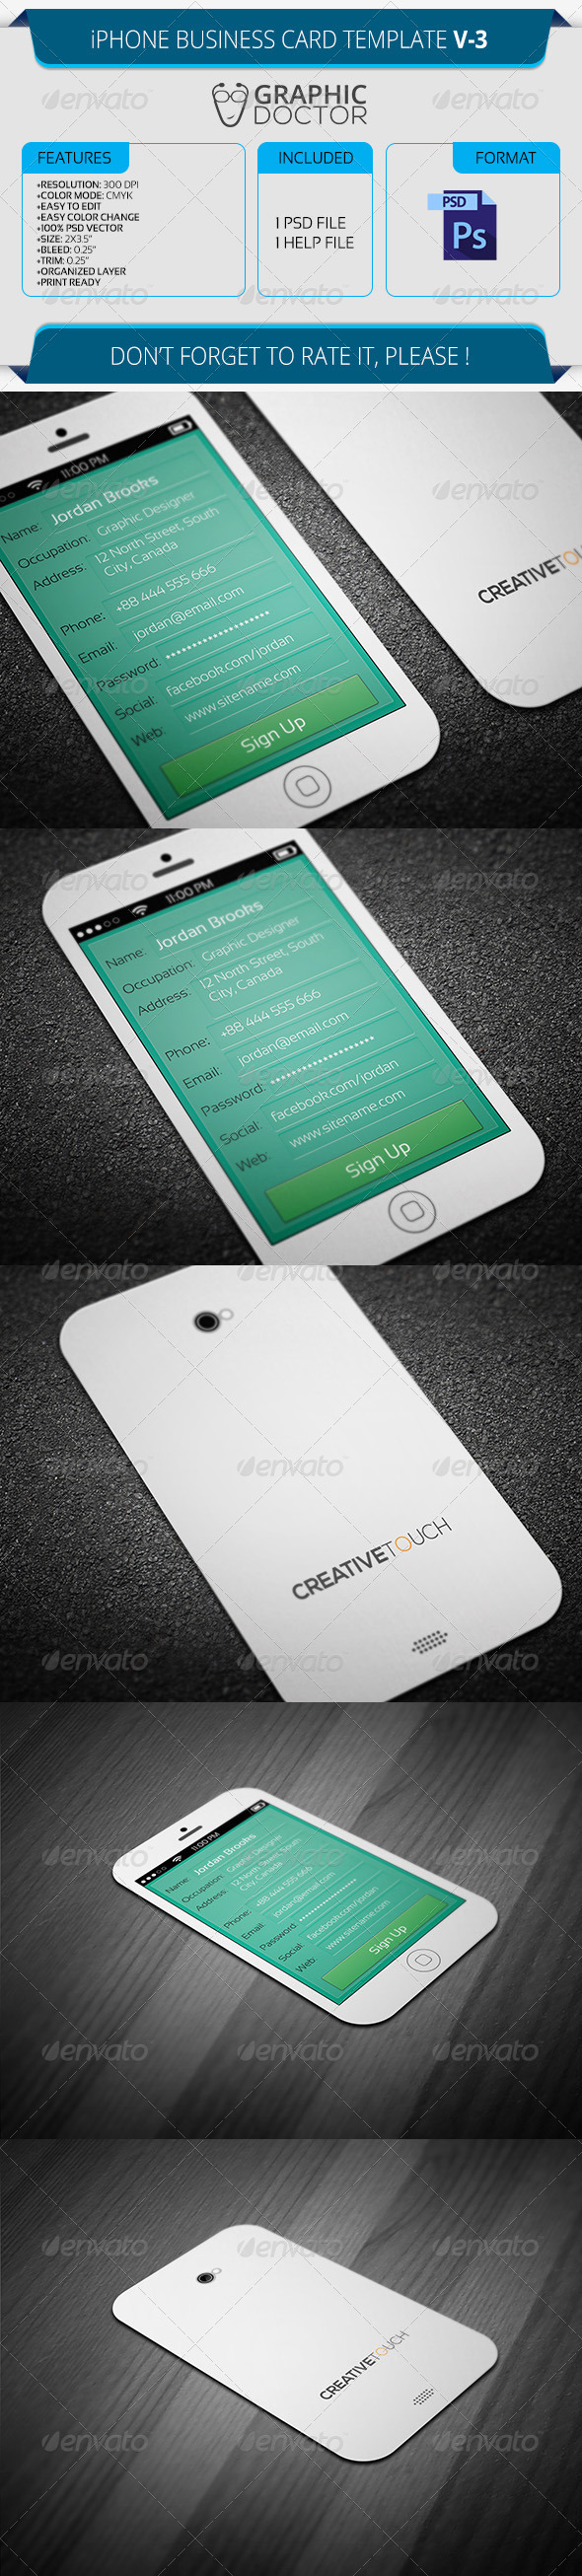 iPhone Business Card Template V-3 by GraphicDoctor | GraphicRiver